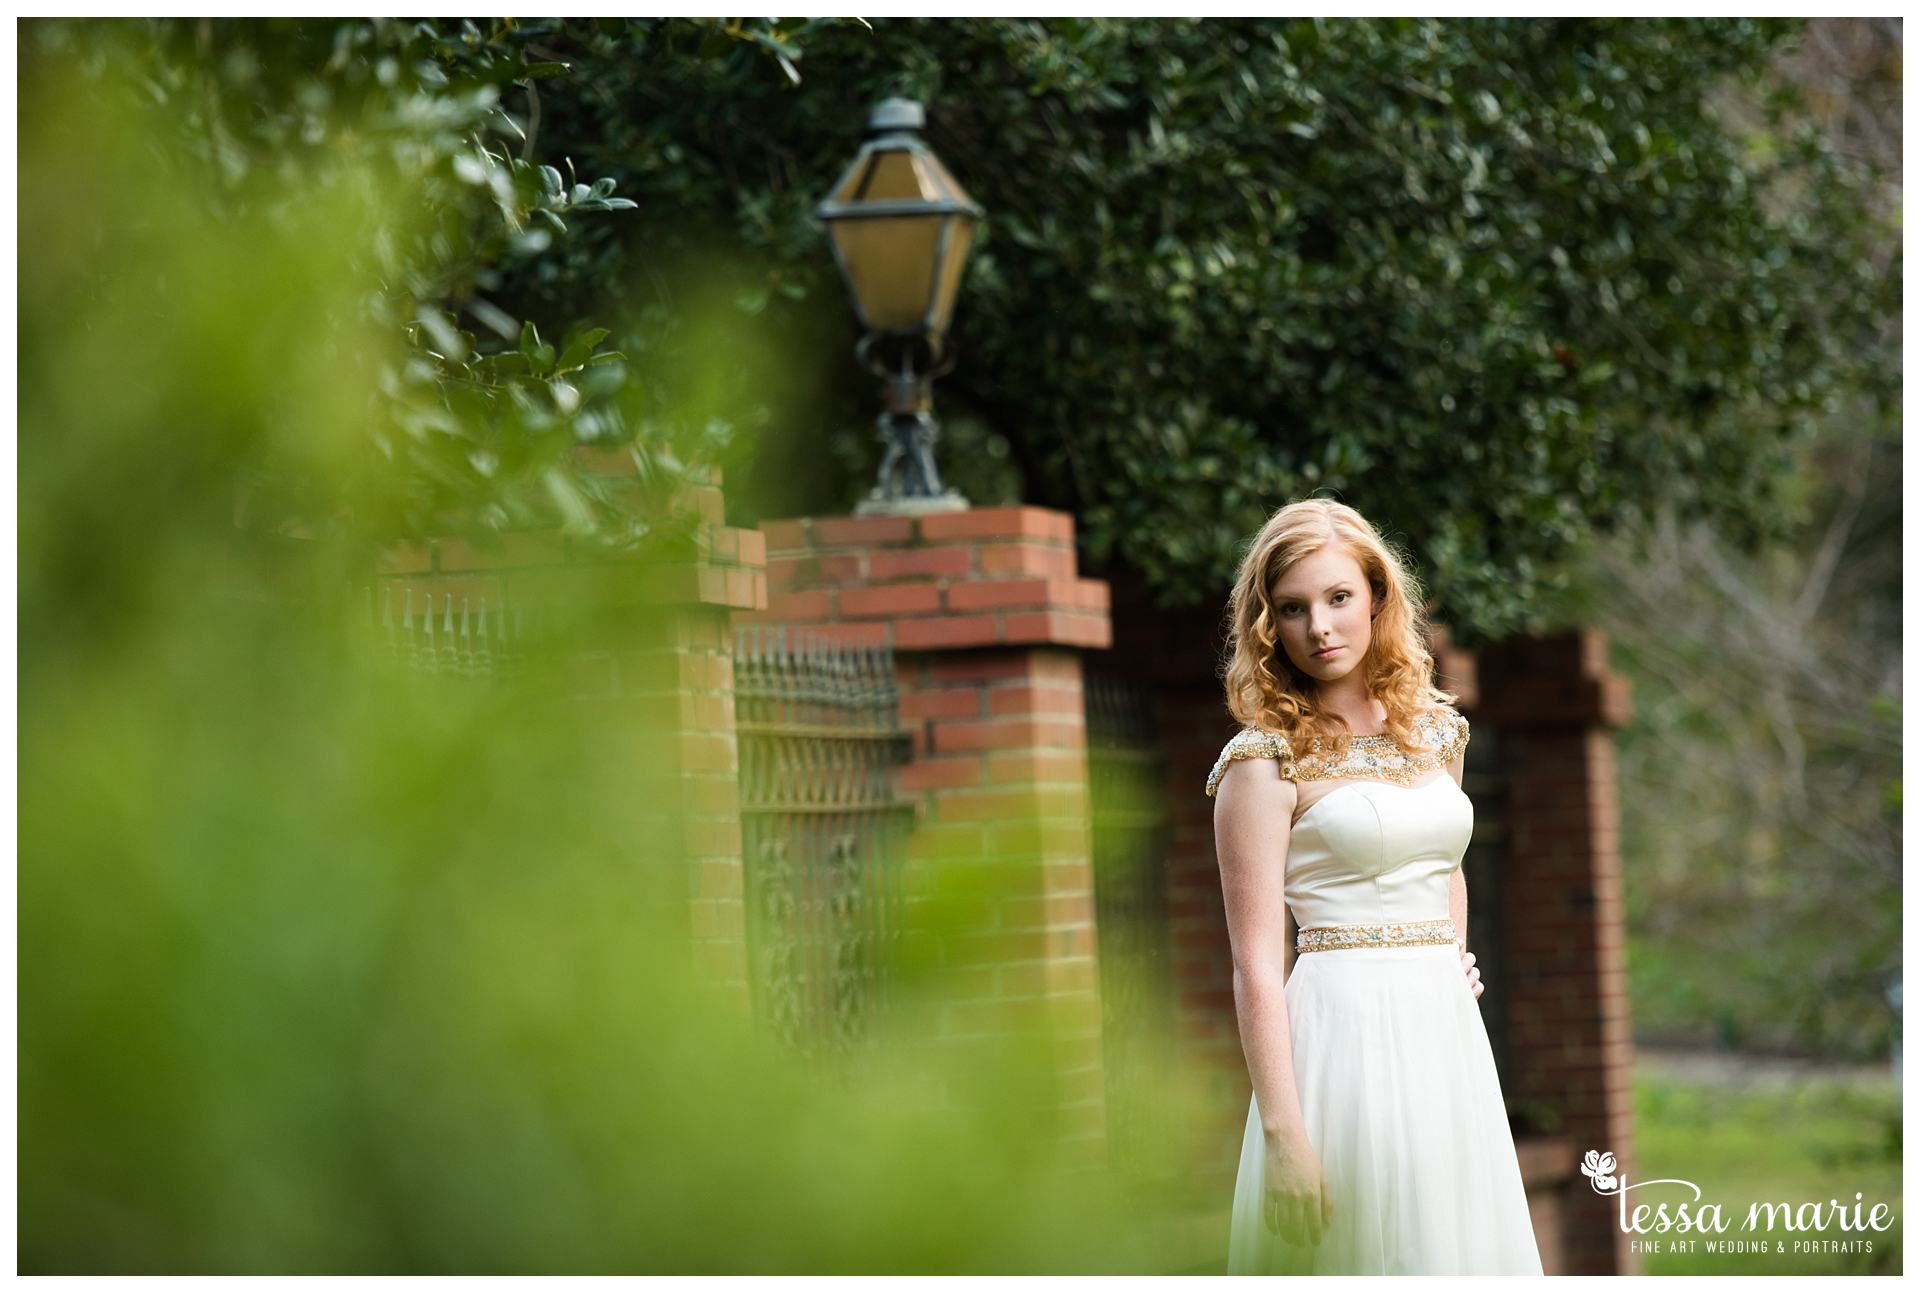 tessa_marie_weddings_legacy_story_focused_wedding_pictures_atlanta_wedding_photographer_family_pictures_portrait_Fine_art_memories_mothers_day_spring_moments_0367